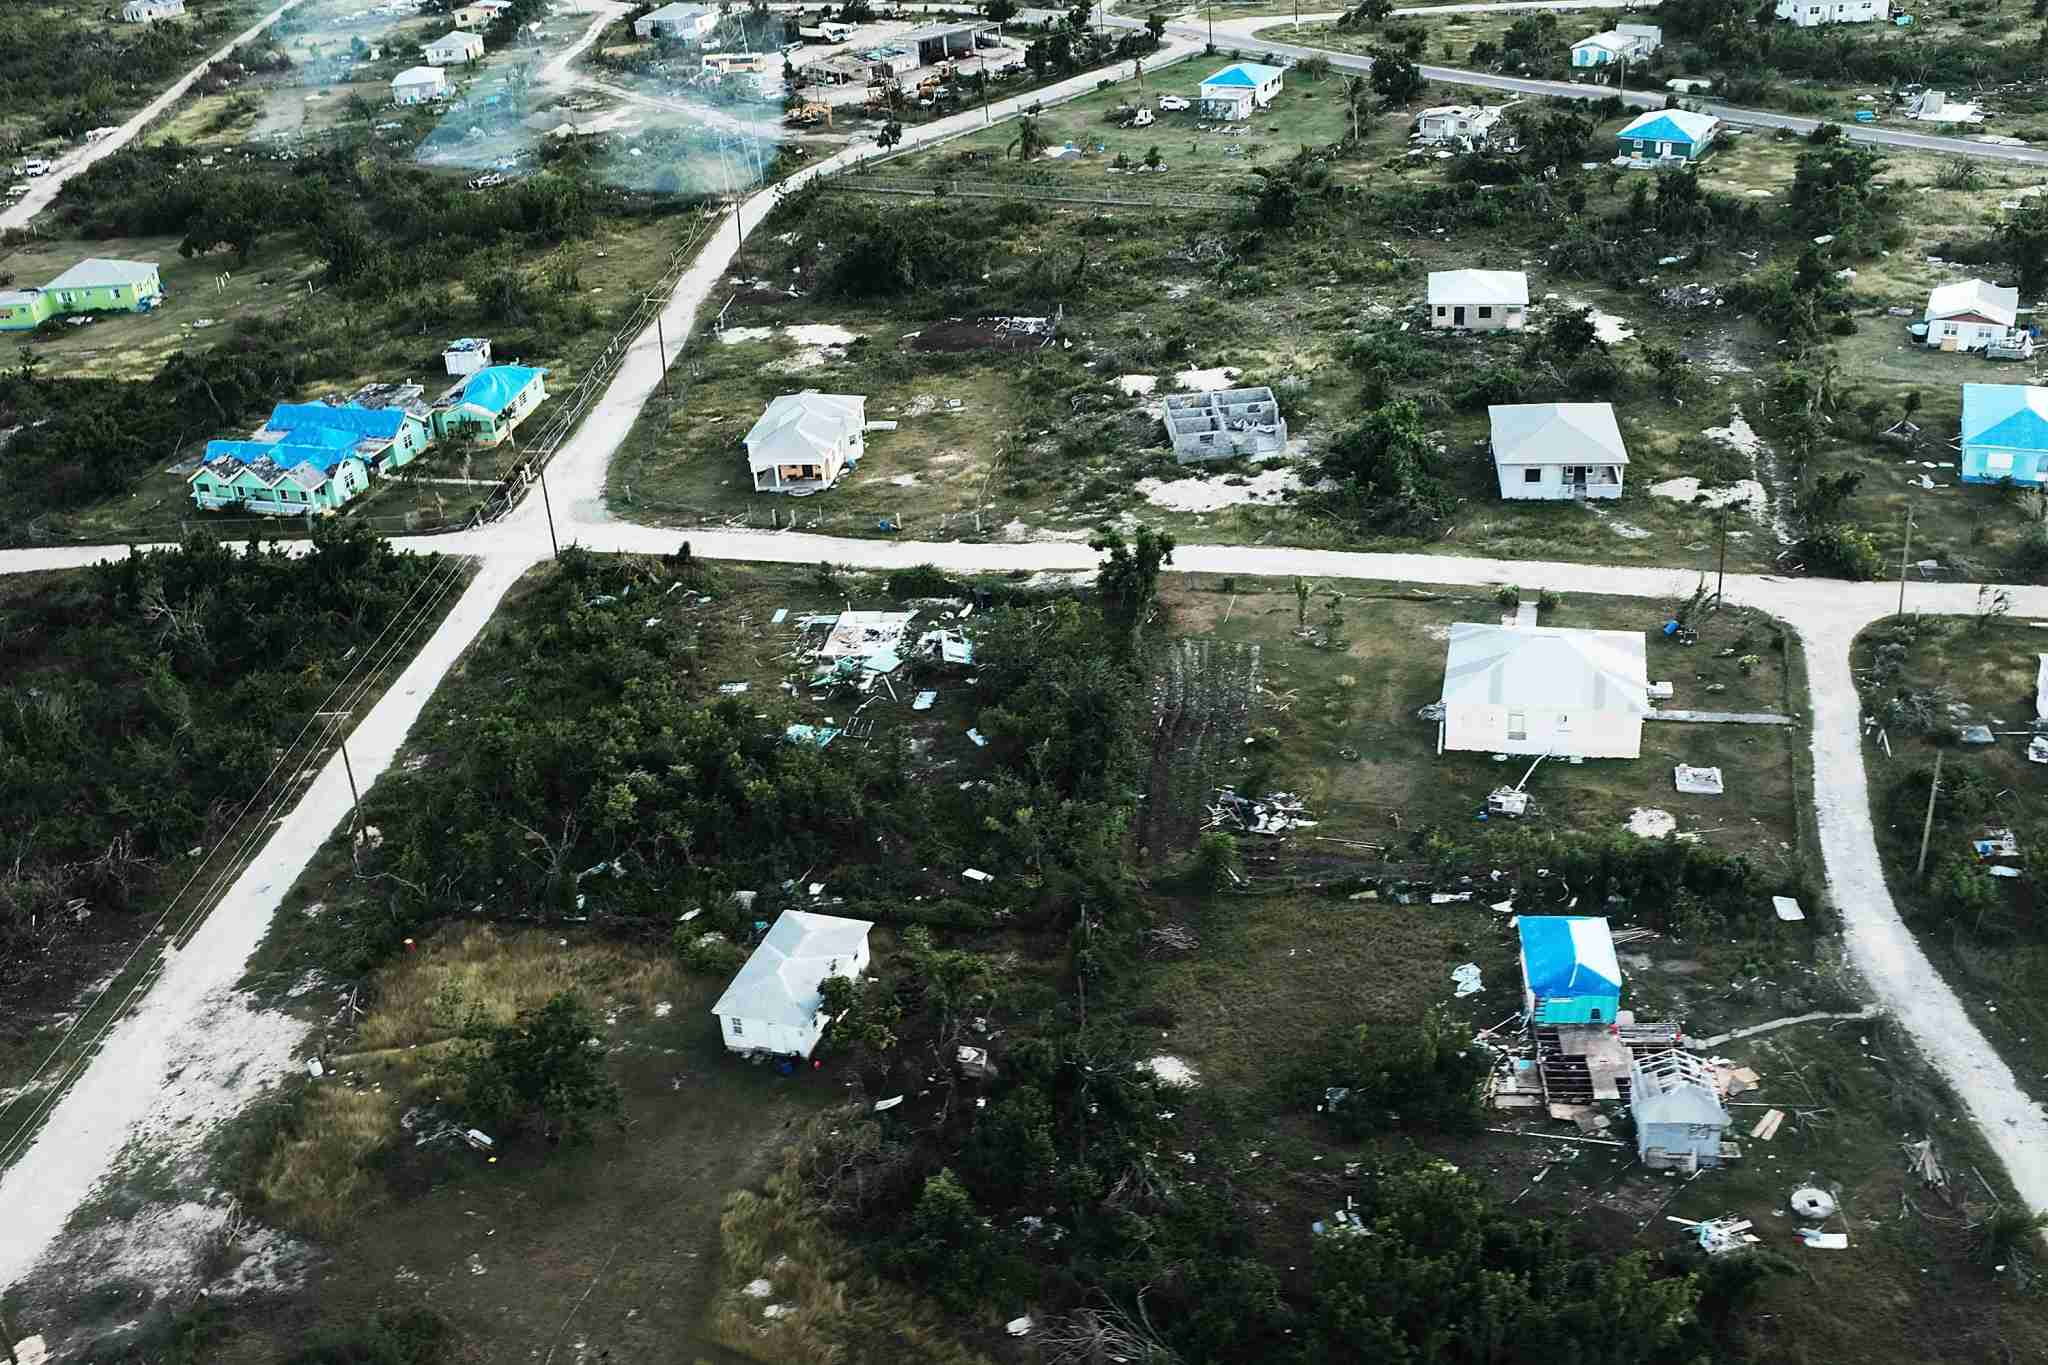 An aerial view of damaged homes on the nearly destroyed island of Barbuda on December 8, 2017 in Cordington, Barbuda. (Photo by Spencer Platt/Getty Images)